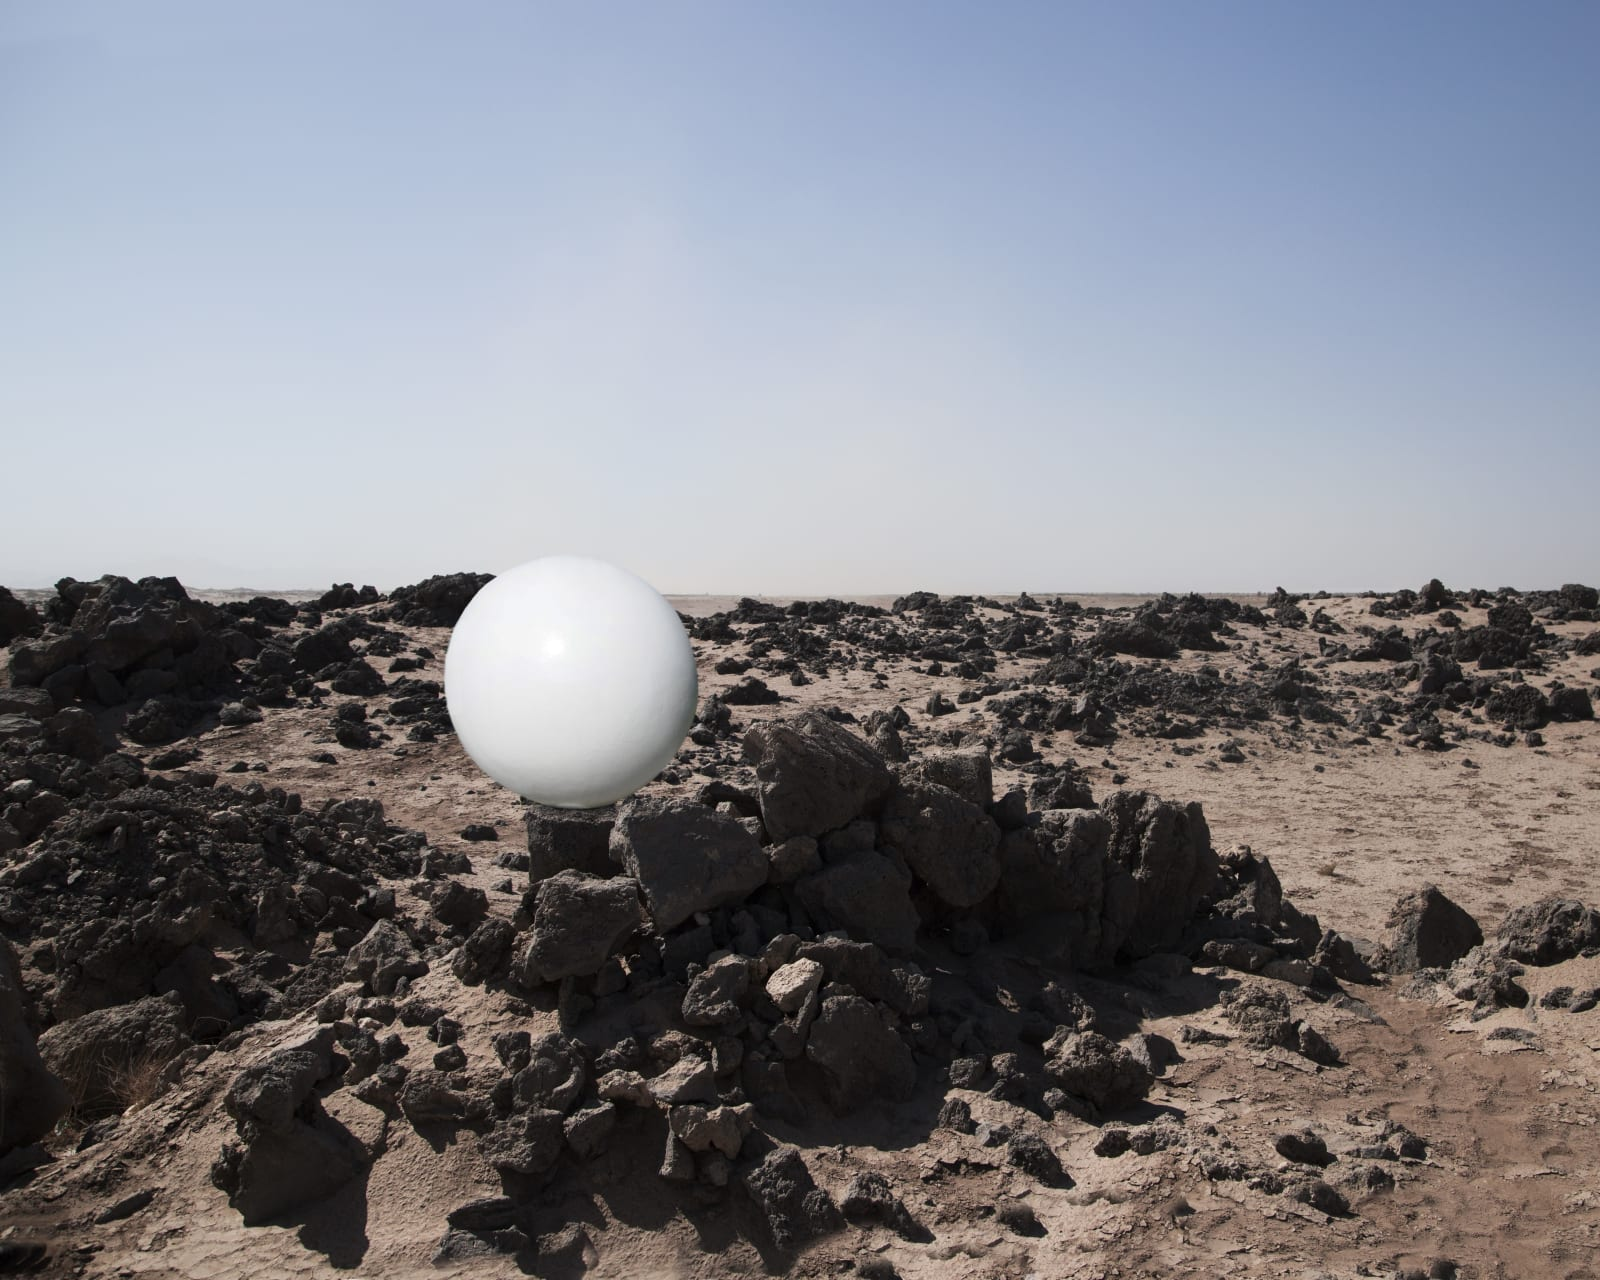 Alice de Kruijs. Planet of the Afar 5, 2017. Fine - Art Huhne Print with Matte Finish (Full Color). Multiple editions.